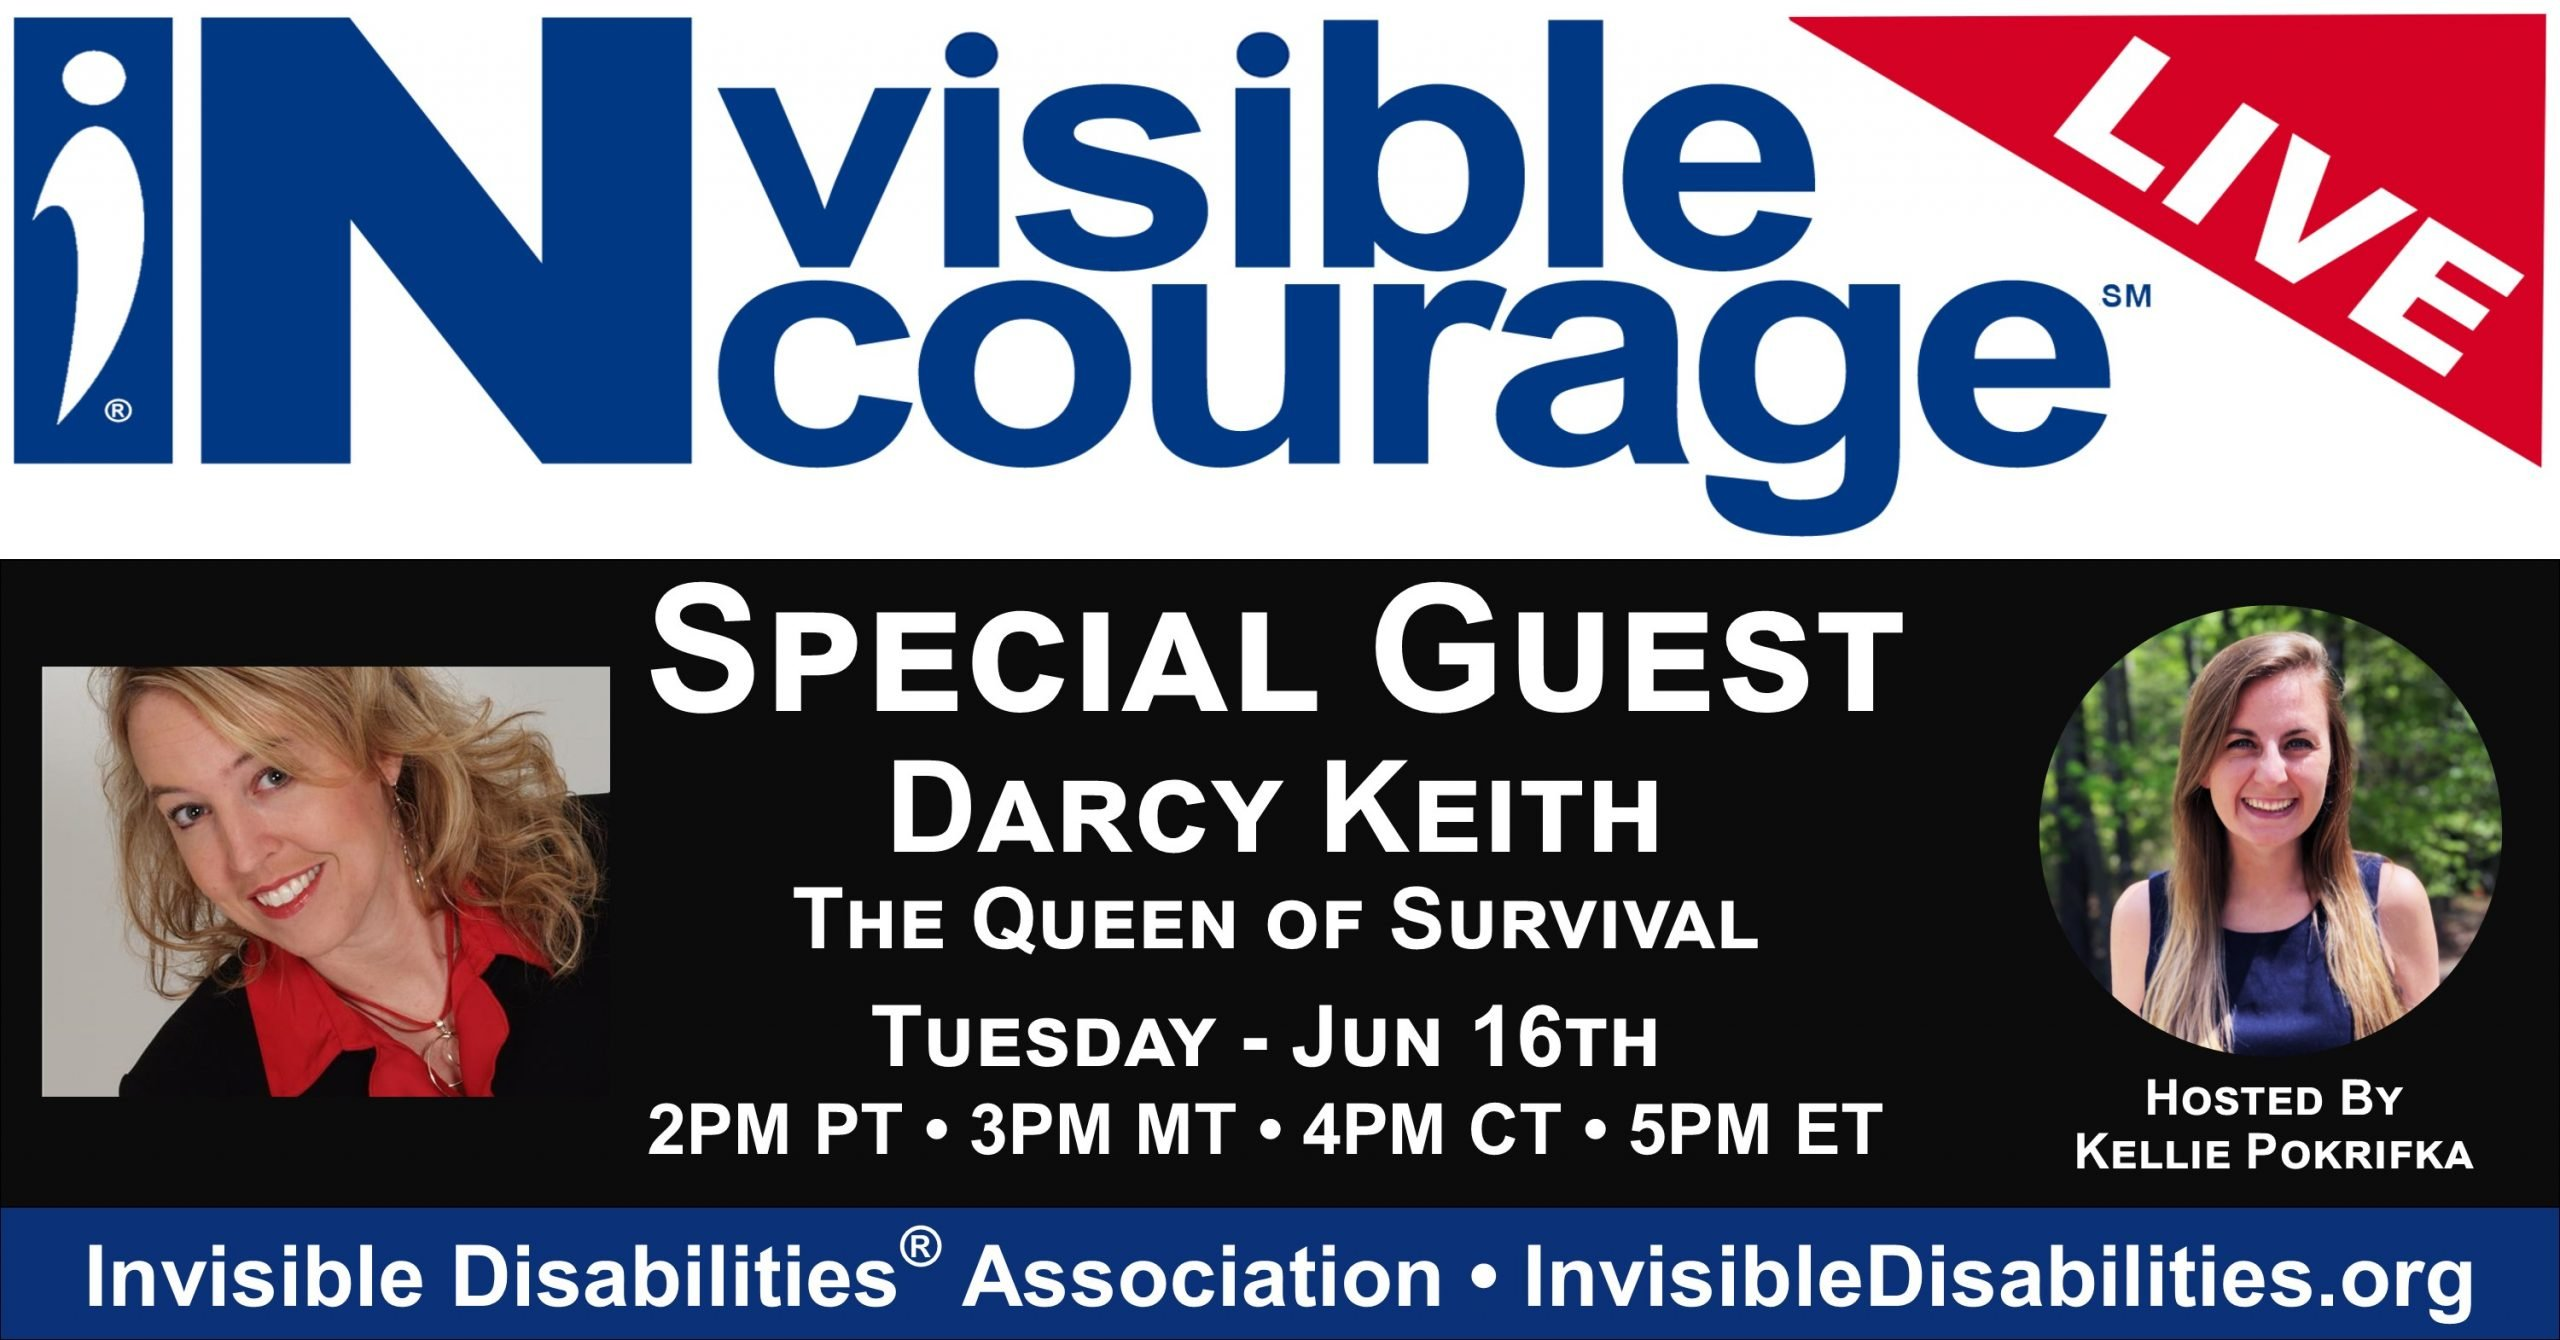 InVisible InCourage Live with Darcy Keith - The Queen of Survival - Invisible Disabilities Association